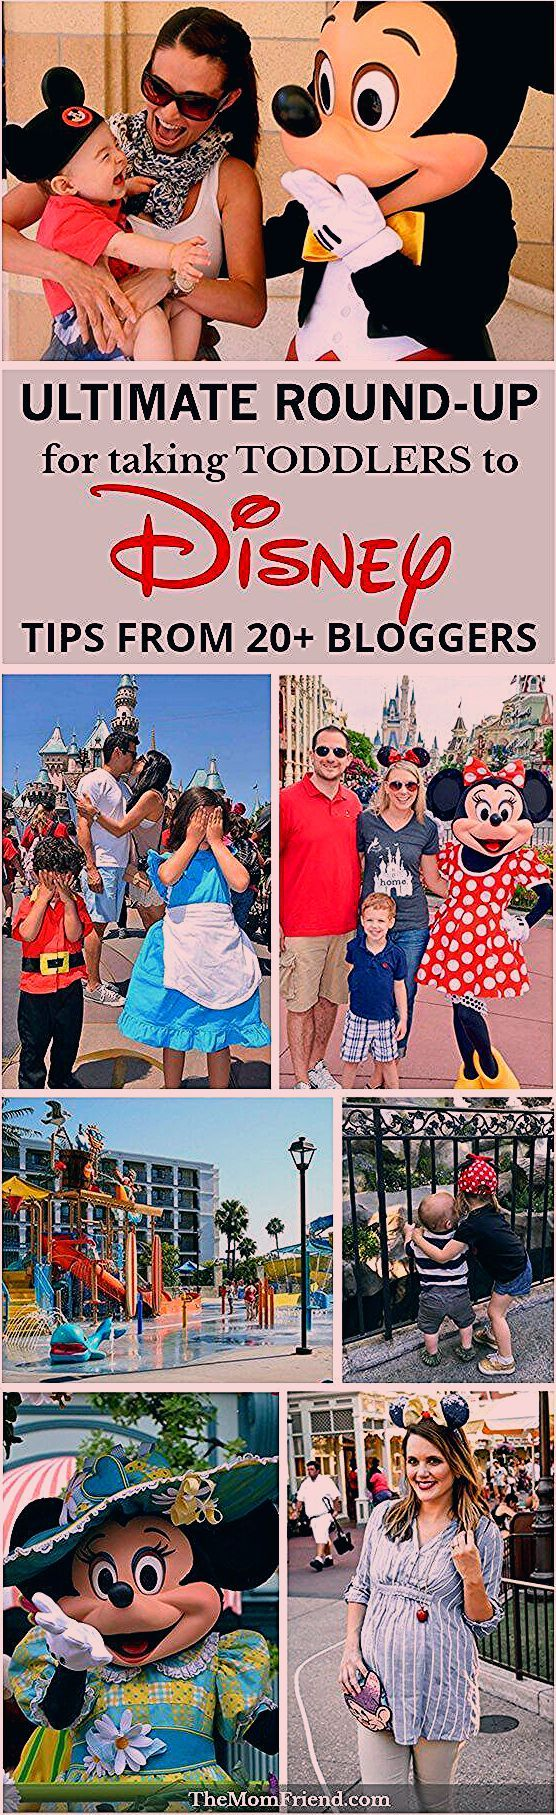 Preparing for Disney with Toddlers: Tips & Secrets from 20+ Bloggers   The Mom Friend